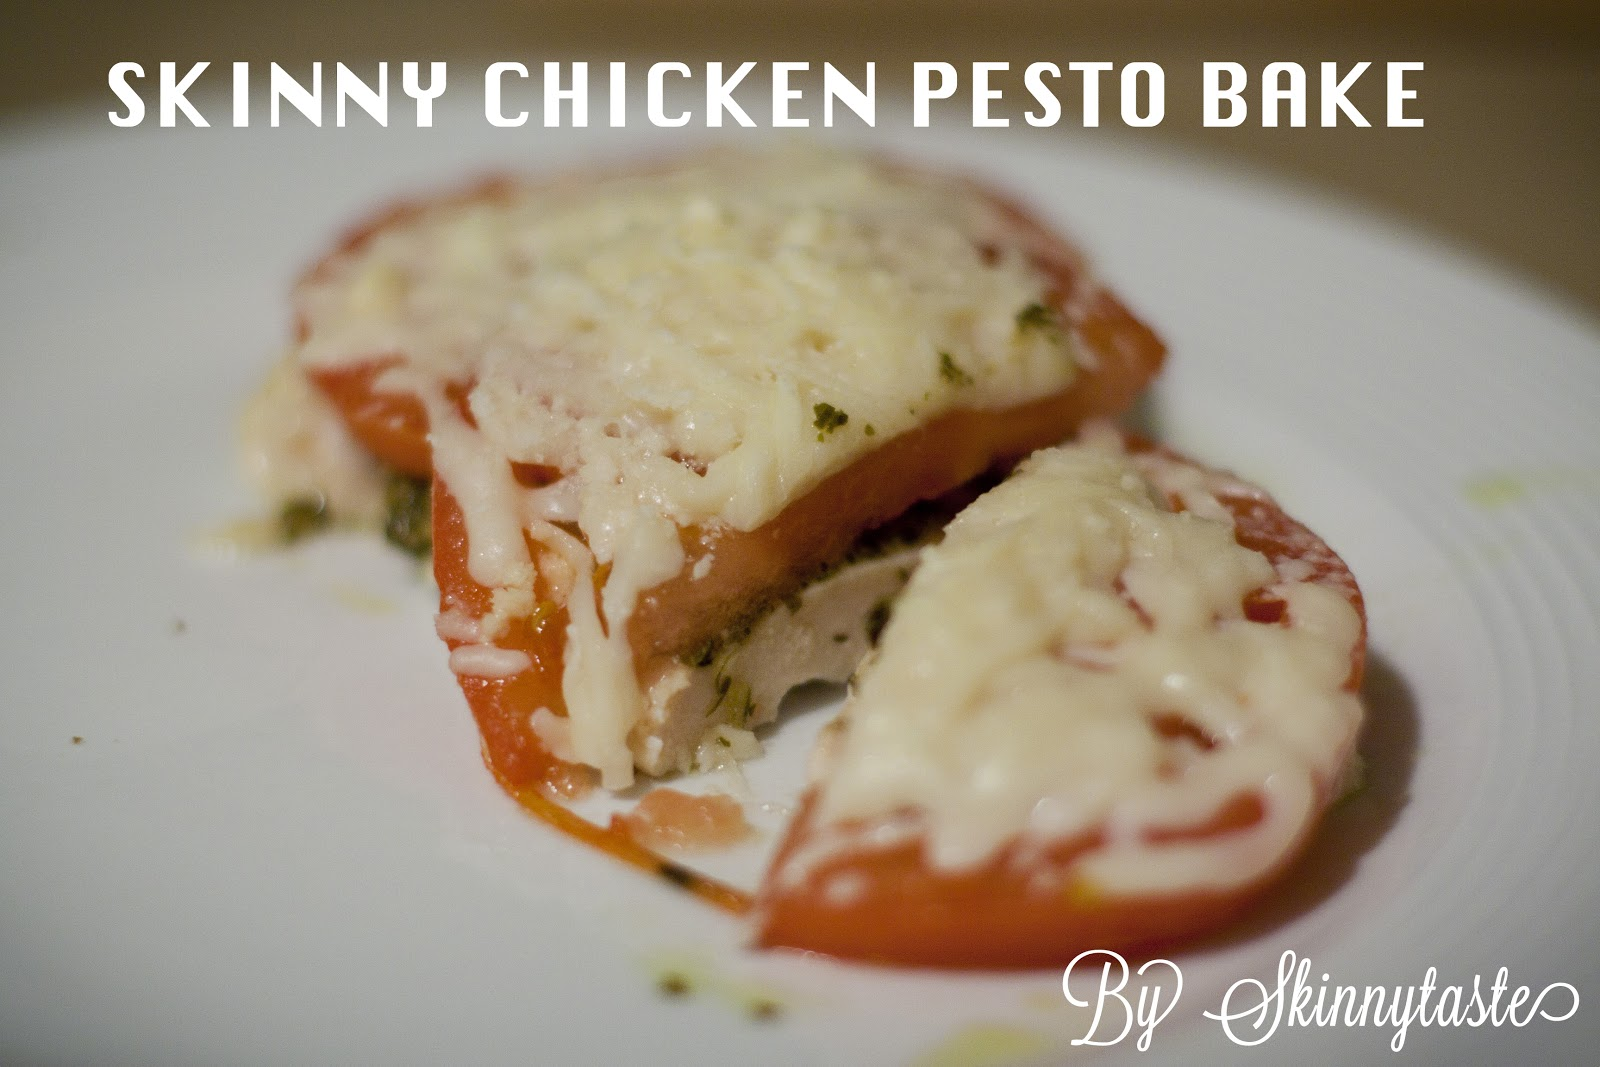 recipe skinny chicken pesto bake from skinnytaste com find the recipe ...